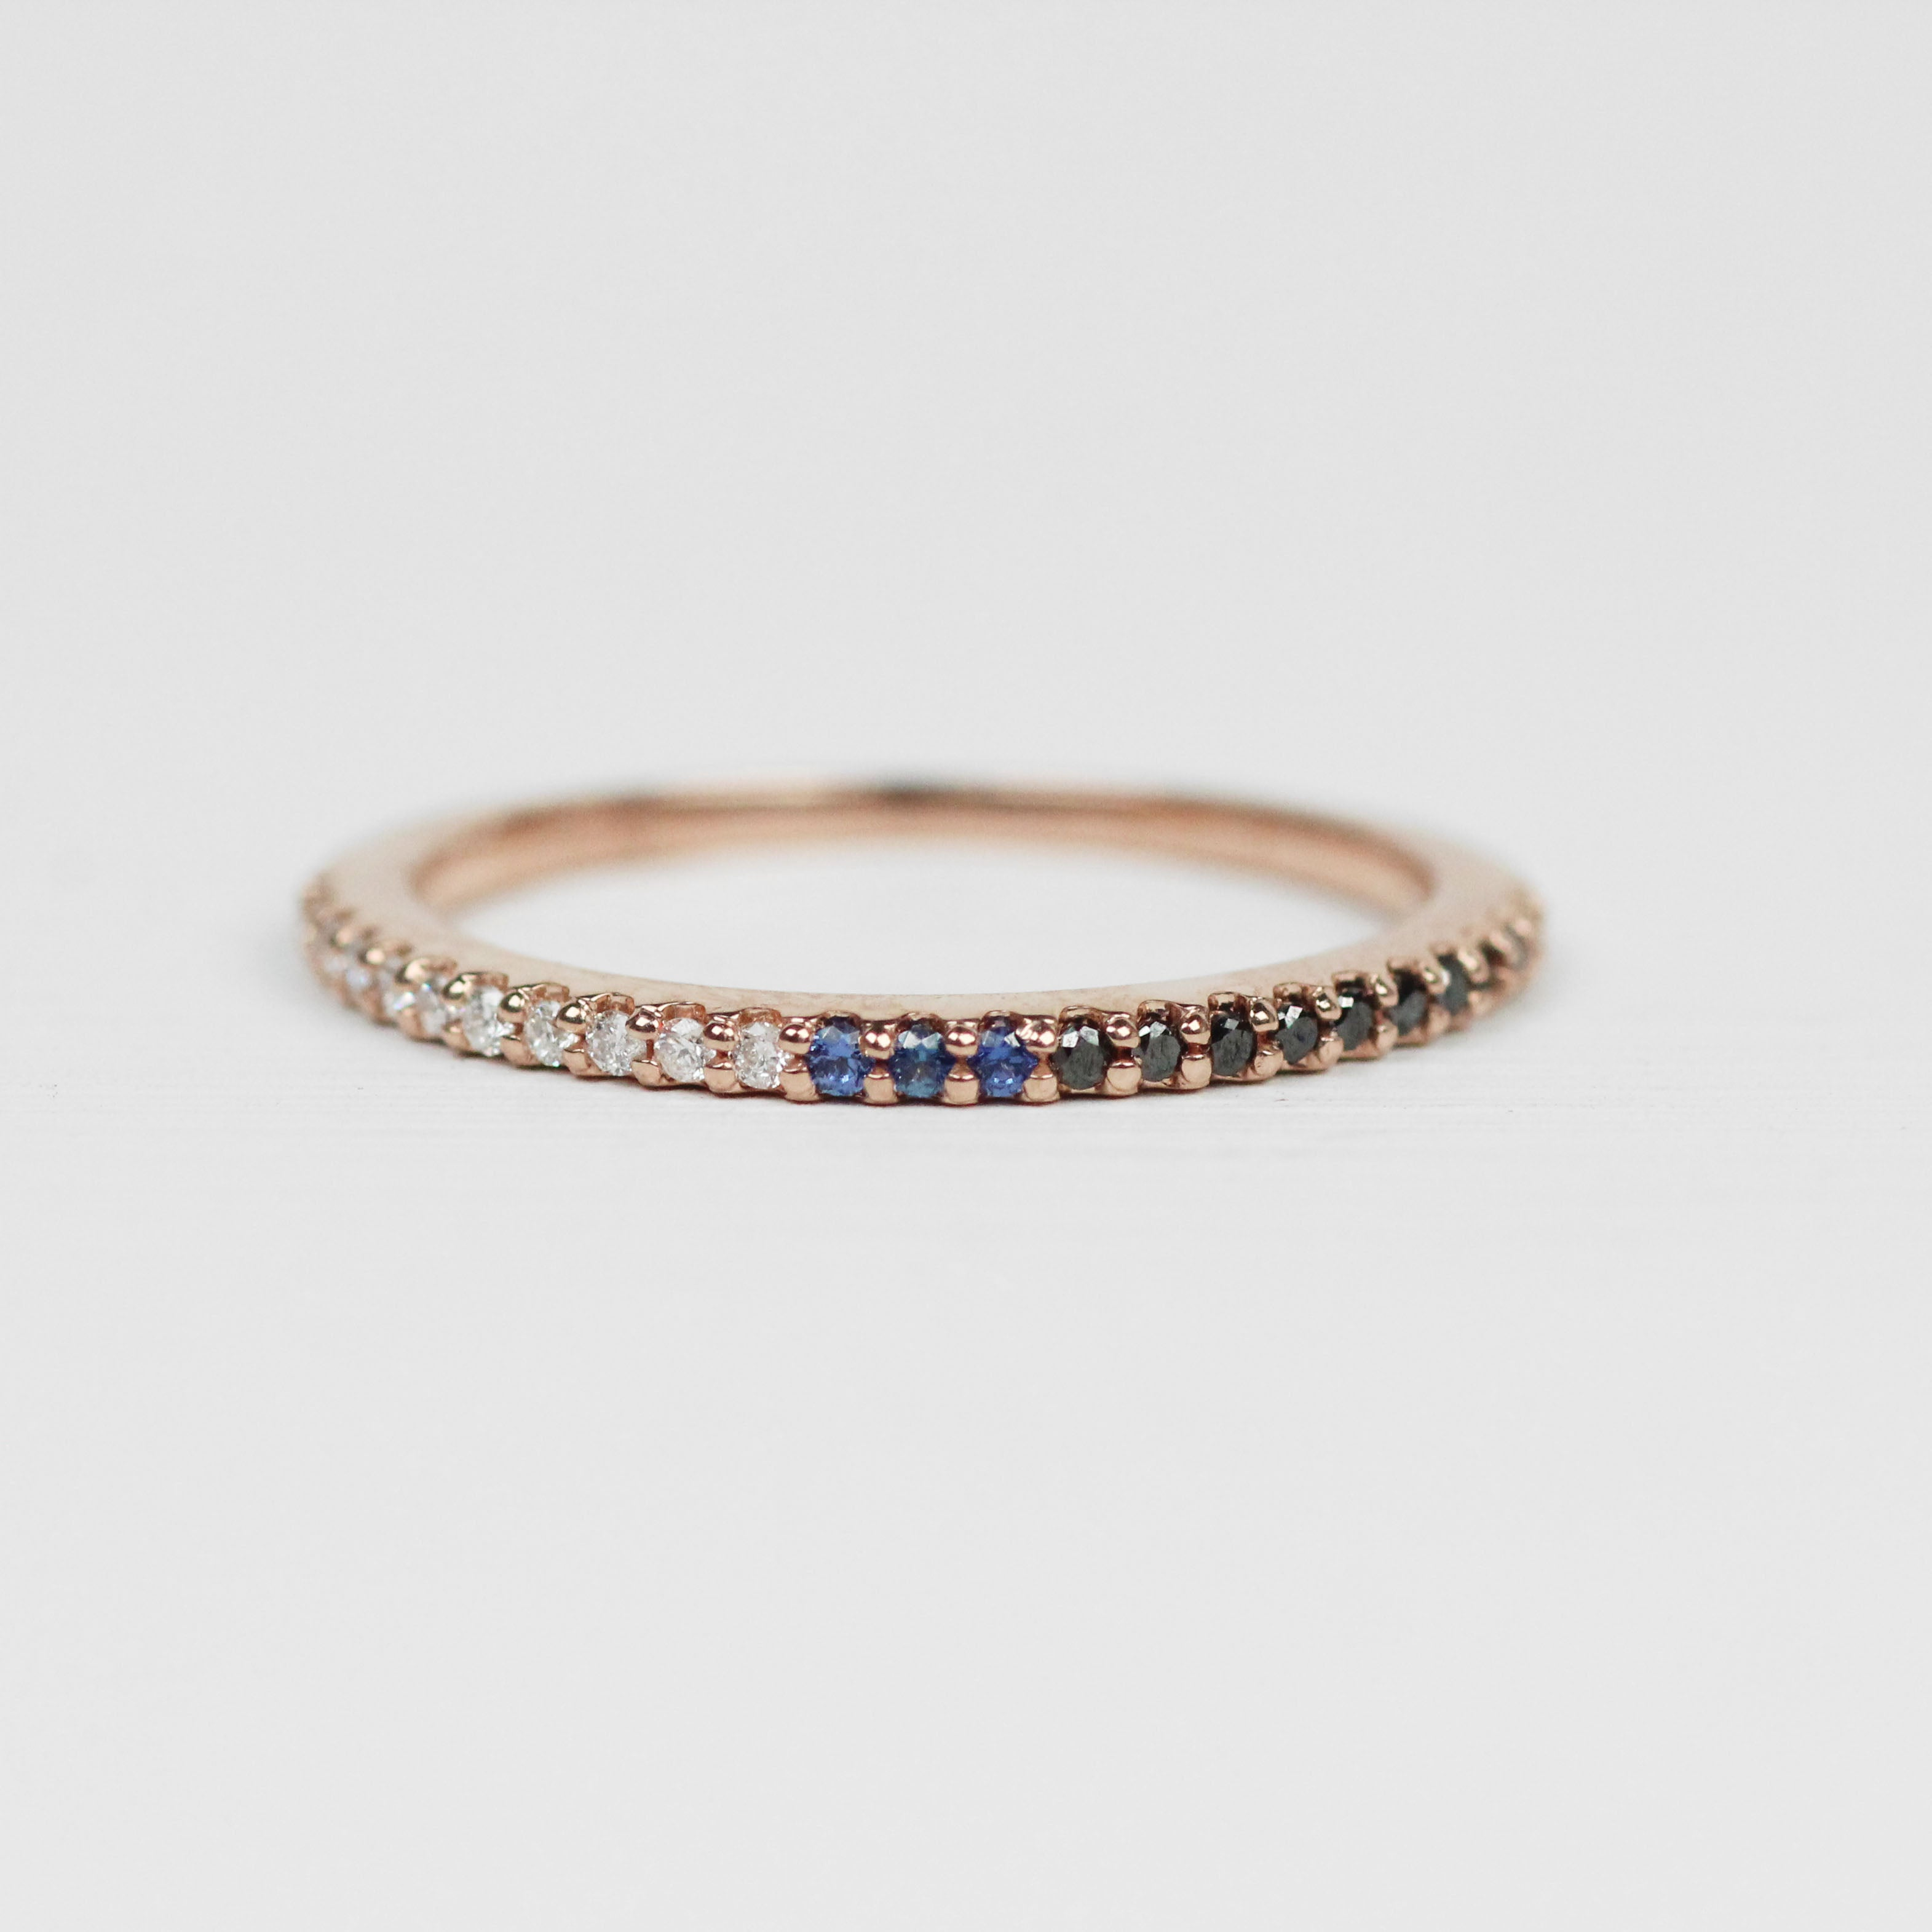 Multi-toned Constance - Pave set, minimal diamond wedding stacking band - Celestial Diamonds ® by Midwinter Co.